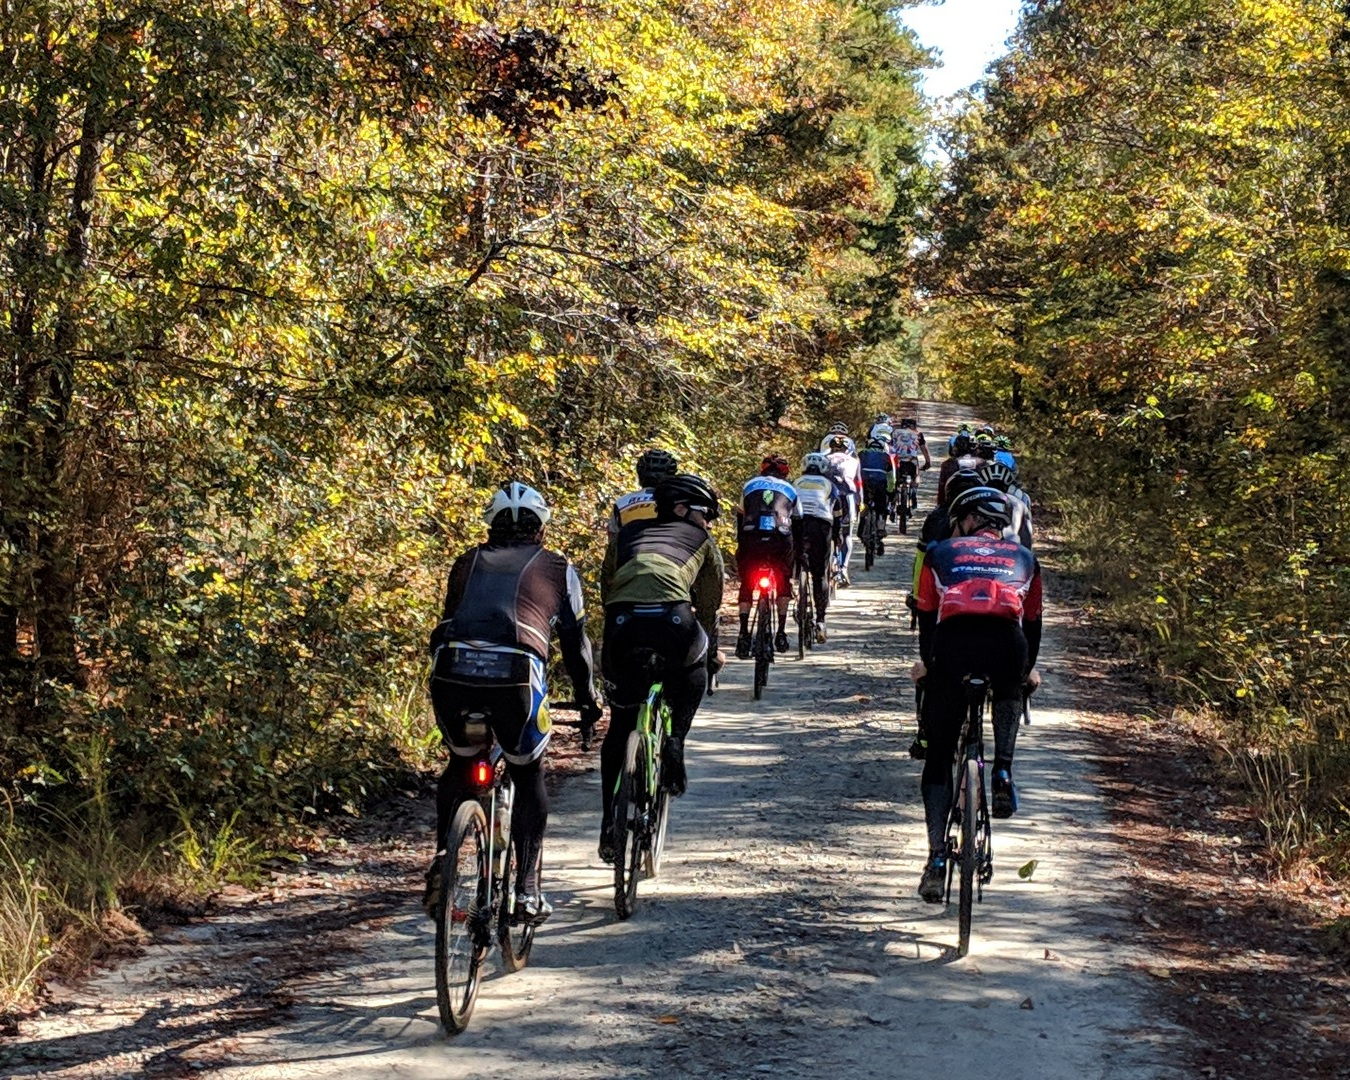 2 day-Diva/Dude: GravelCamp - October 3rd-5th 2019 (In conjunction with Boyd Cycling Gravel event)Location: Sumter National Forest9:30am-3pm dailyDifficulty Level: Blue | BlackCost TBDGravel is the rage, right? WELP Boyd Cycling and TotalCyclist were there before the rage! Join us in the Sumter National Forest for coaching, training, friendship and Fun….Gravel Fun!